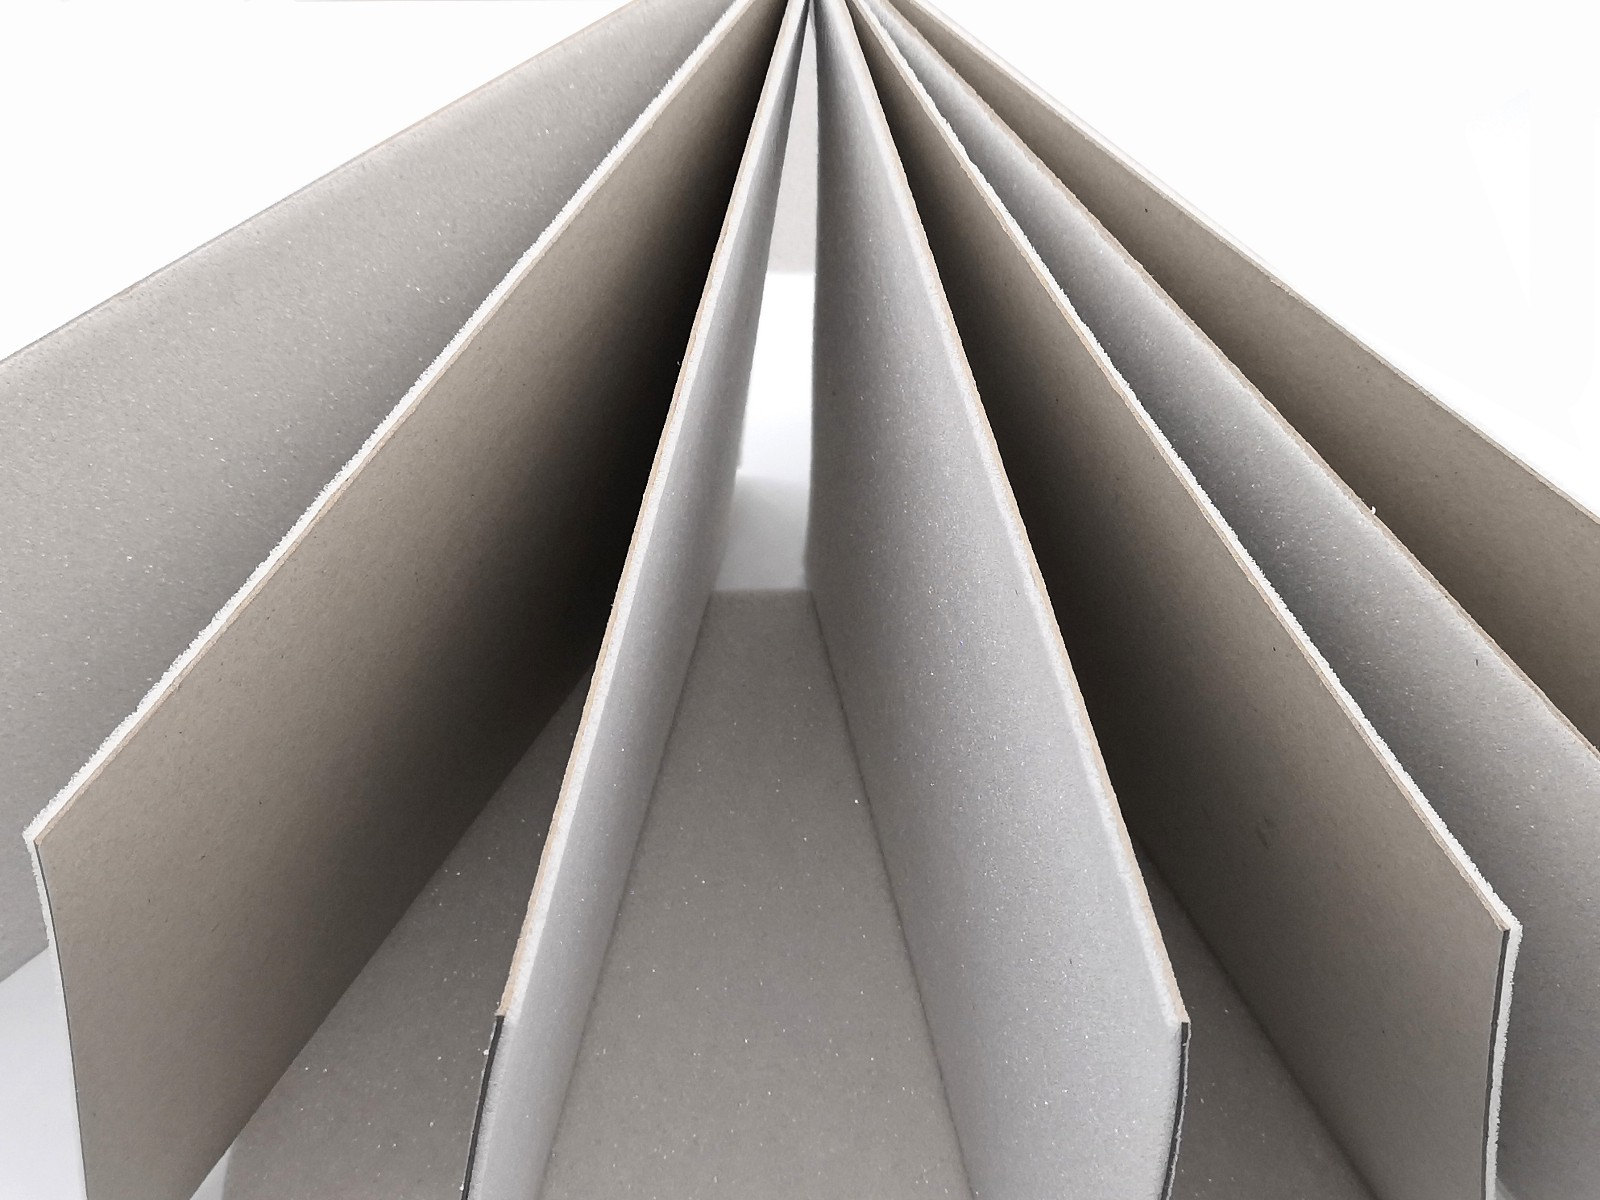 NEW BAMBOO PAPER coated foam core board 4x8 factory price for book covers-3